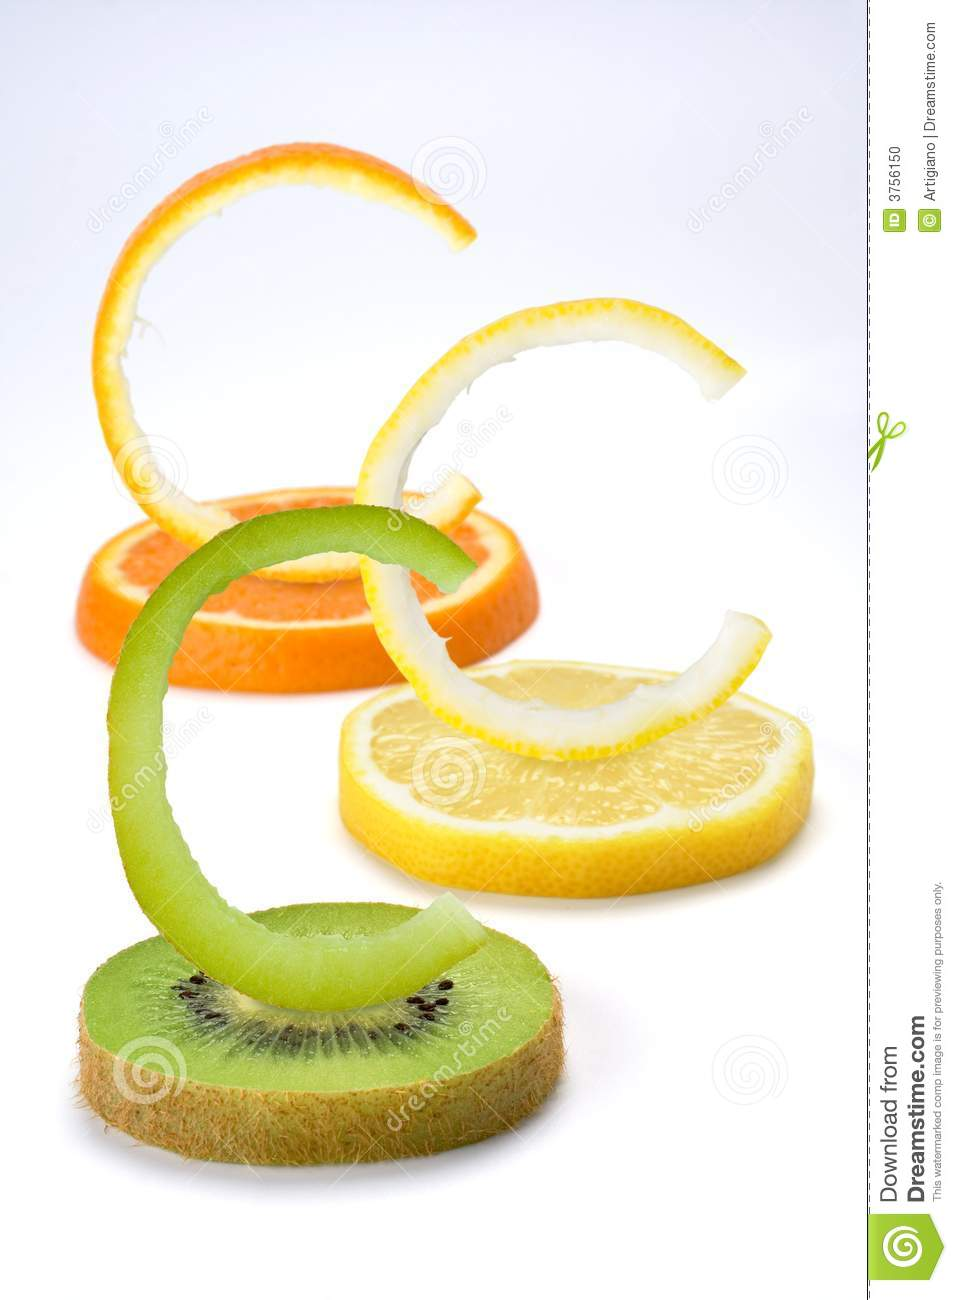 Vitamin C Fruits Vertical Stock Photo.